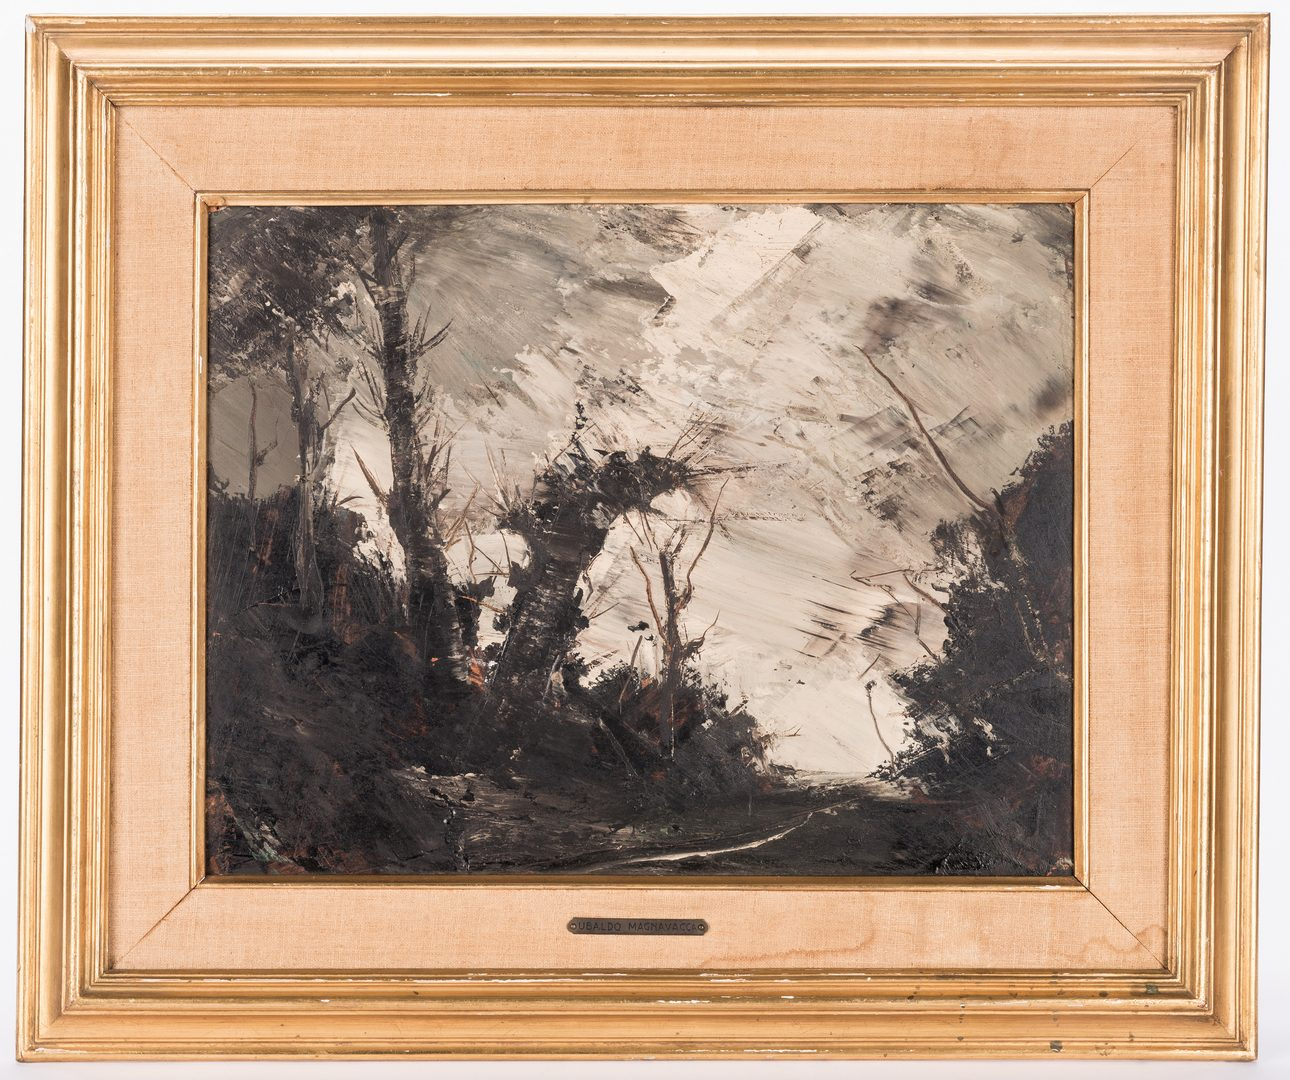 Lot 602: Ubaldo Magnavacca, Oil on Board, Landscape and more